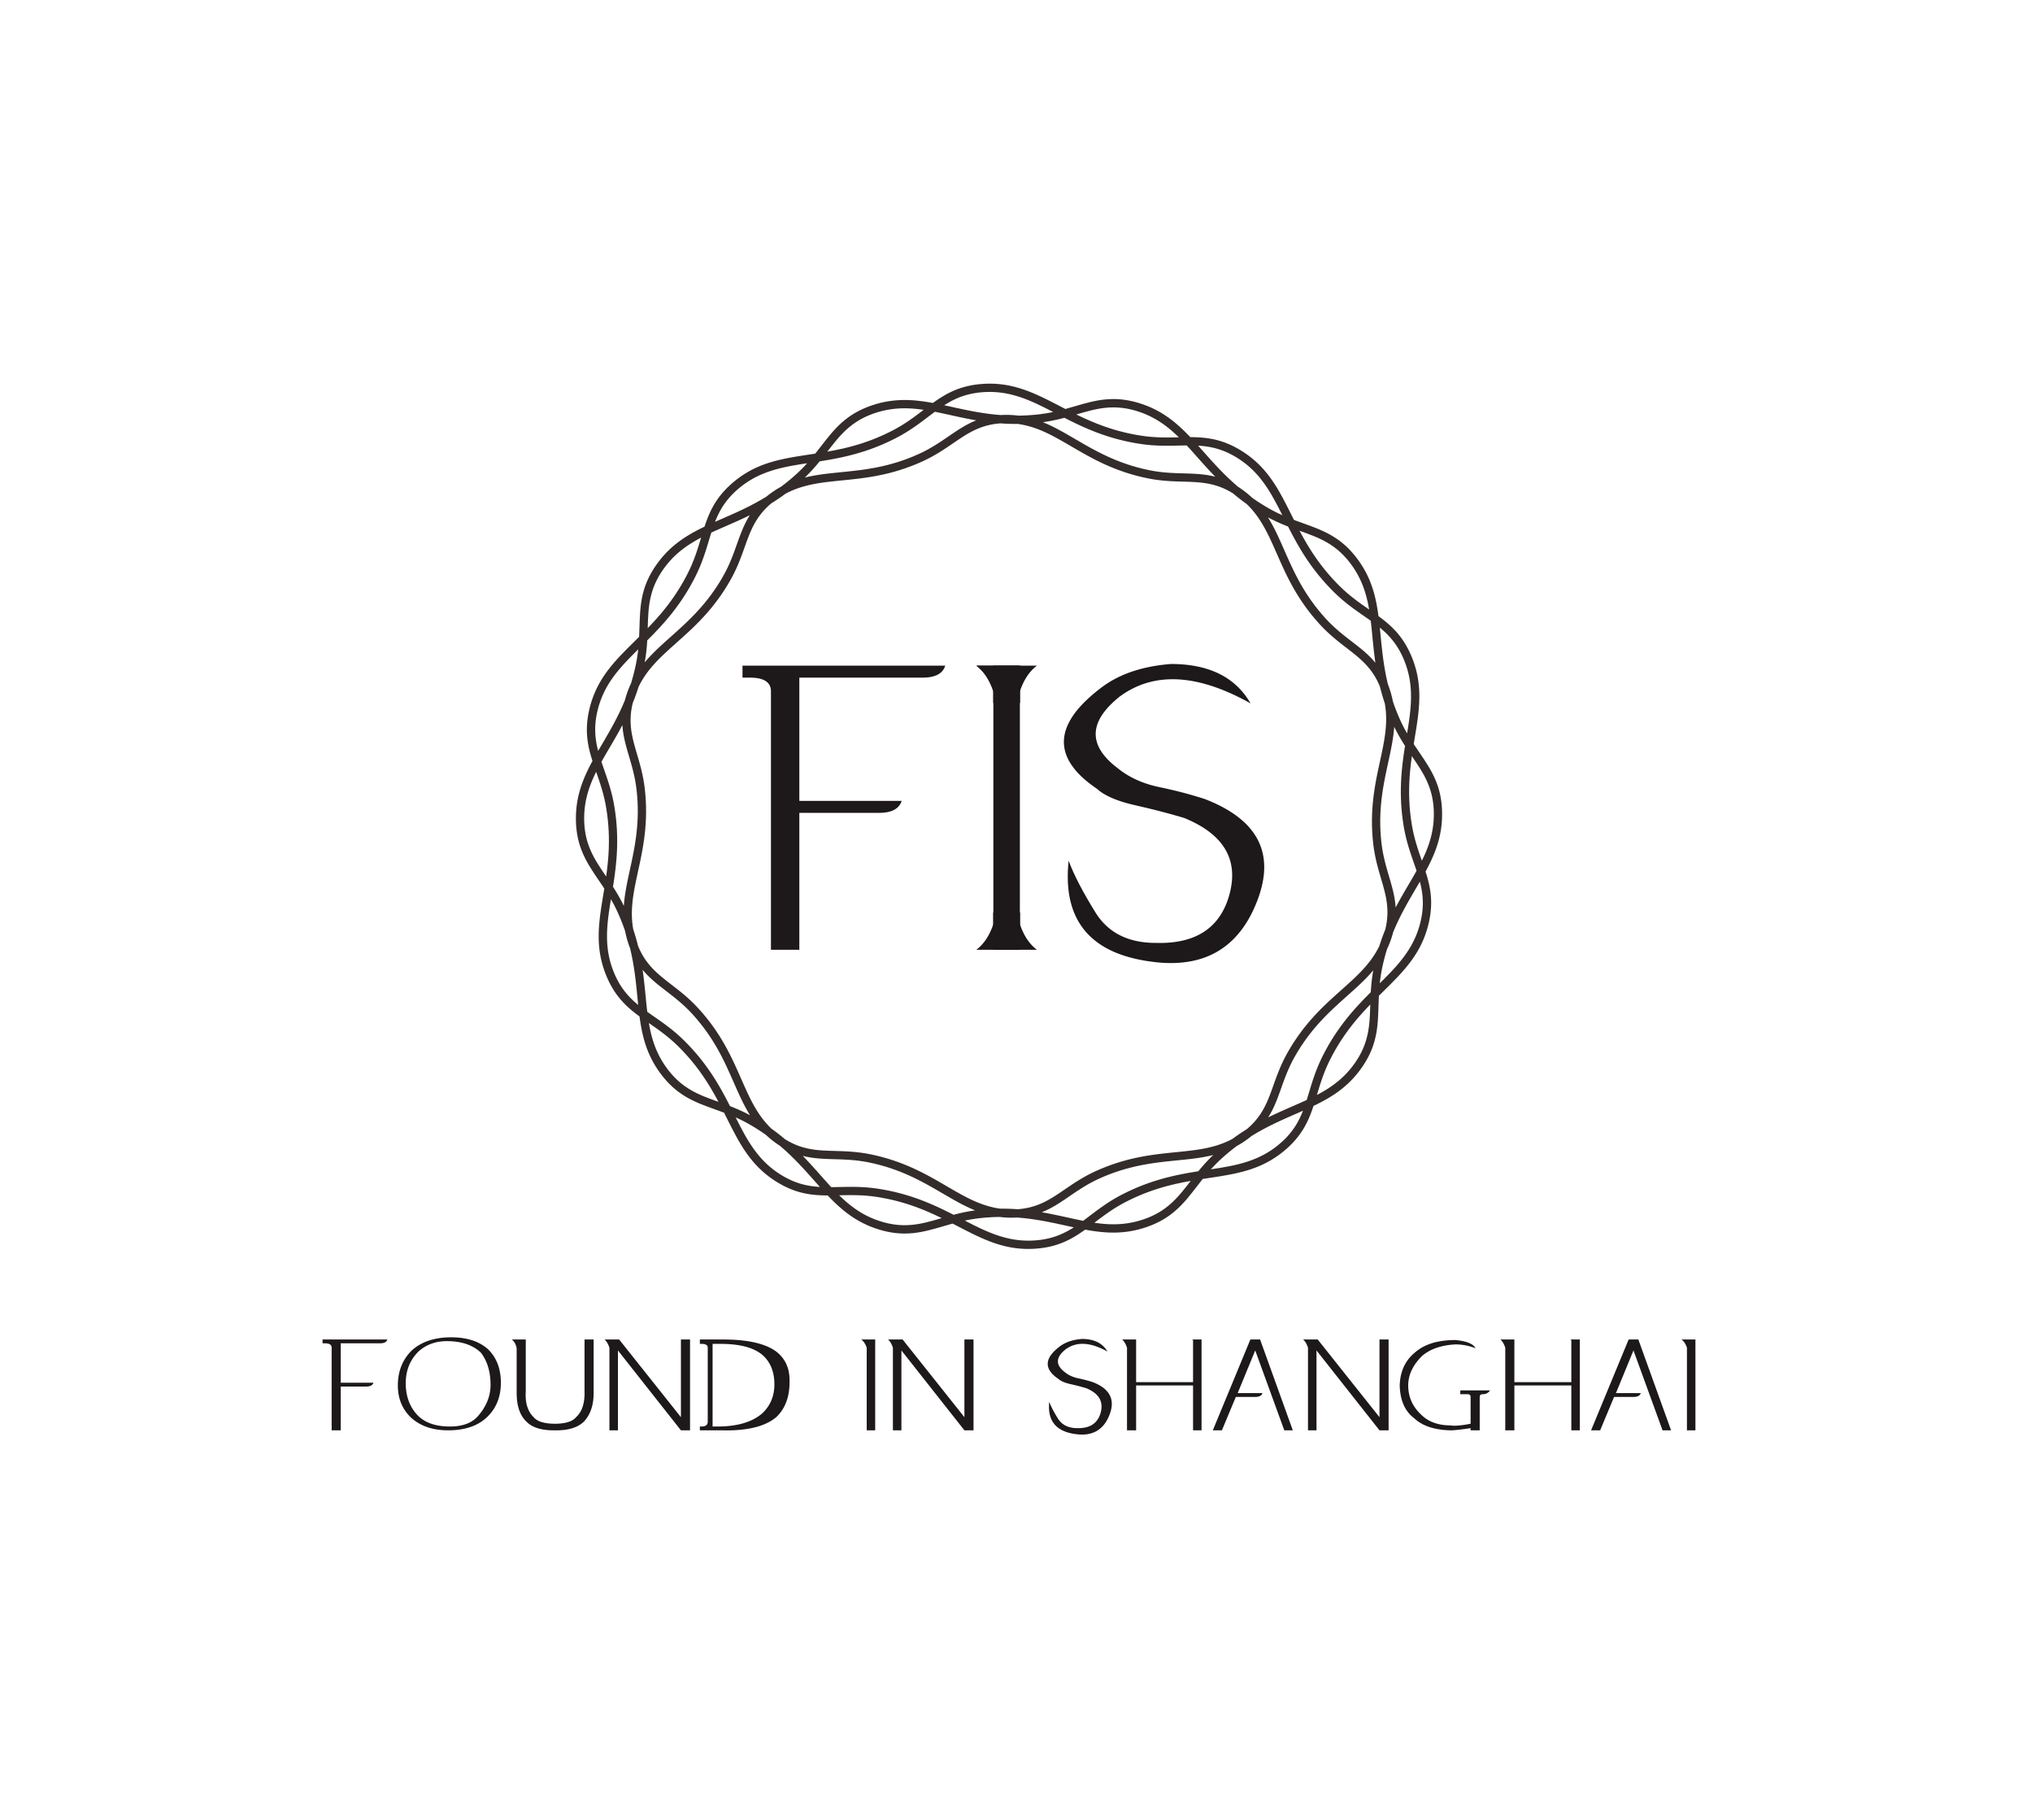 Found in Shanghai Graphic Processing Services Command Center | FIS Found in Shanghai